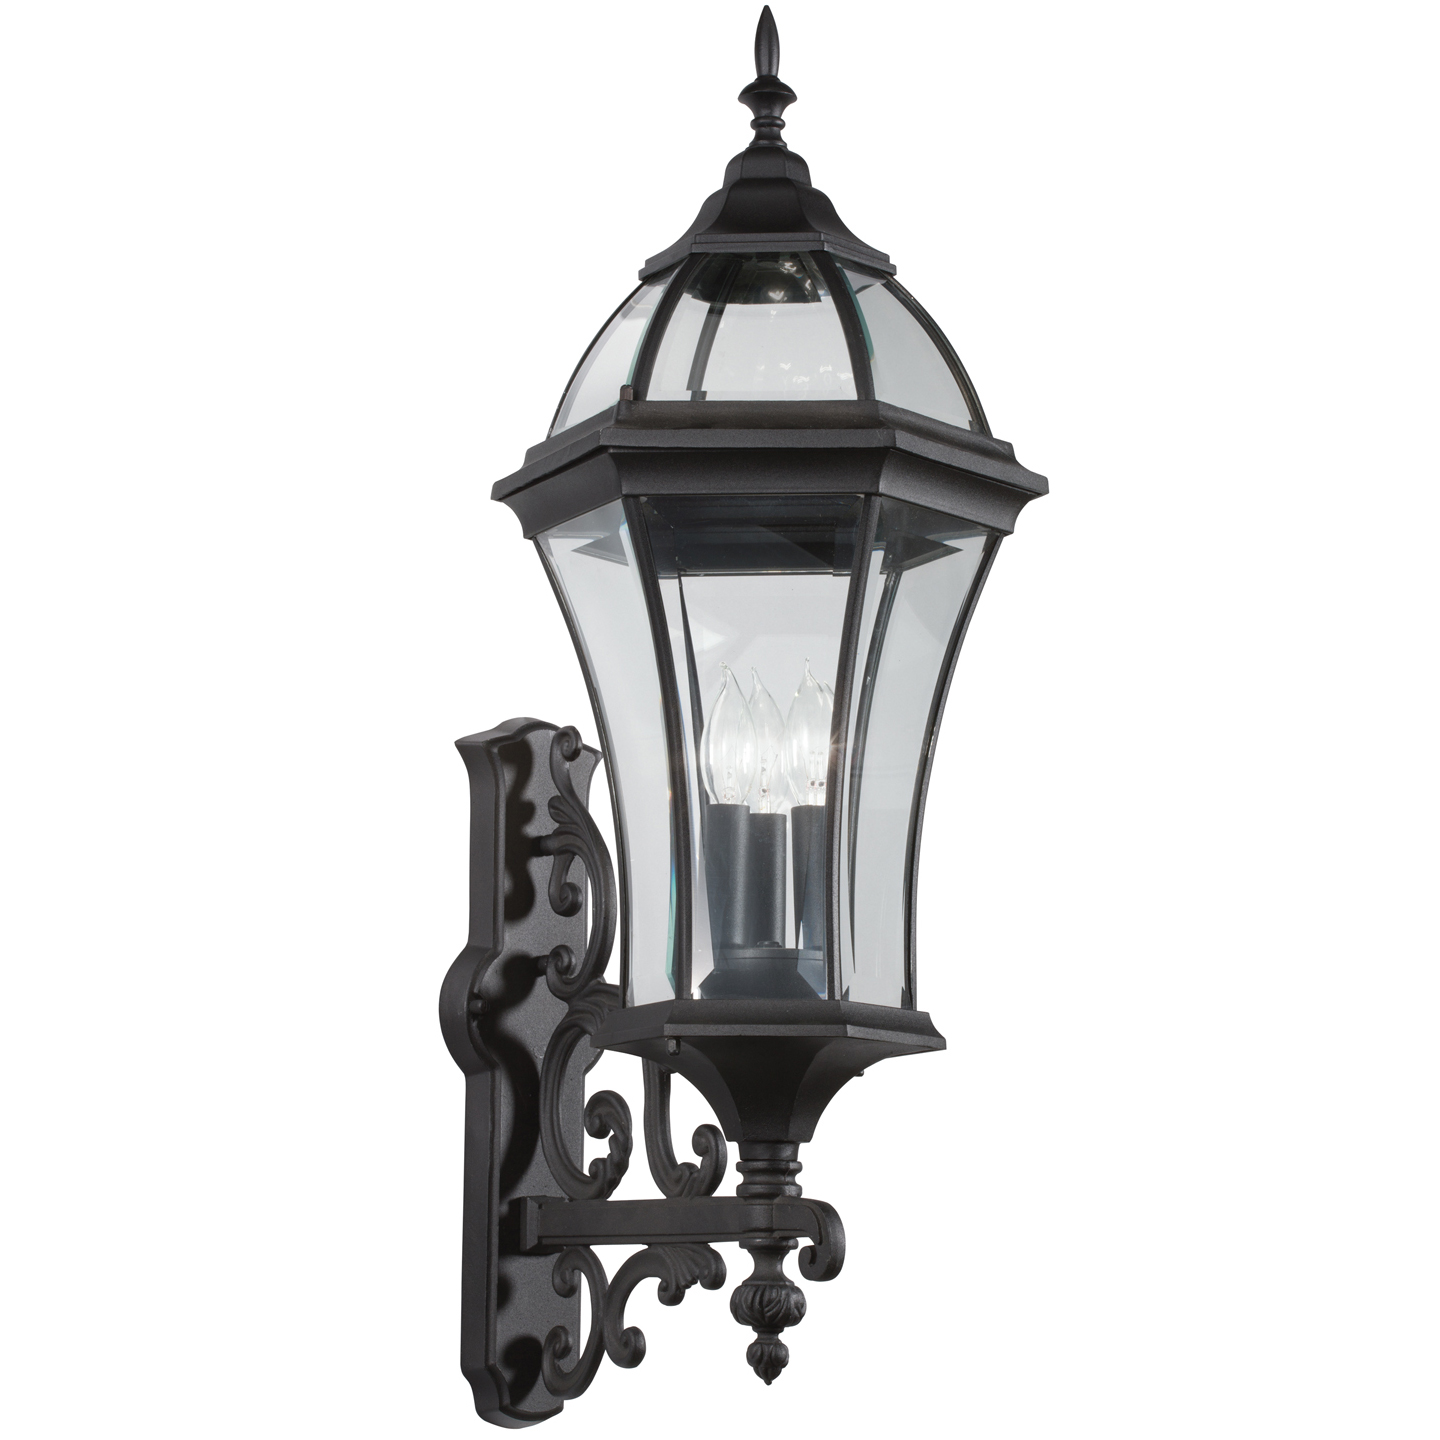 Townhouse Extra Large Outdoor Wall Light By Kichler 49185bk